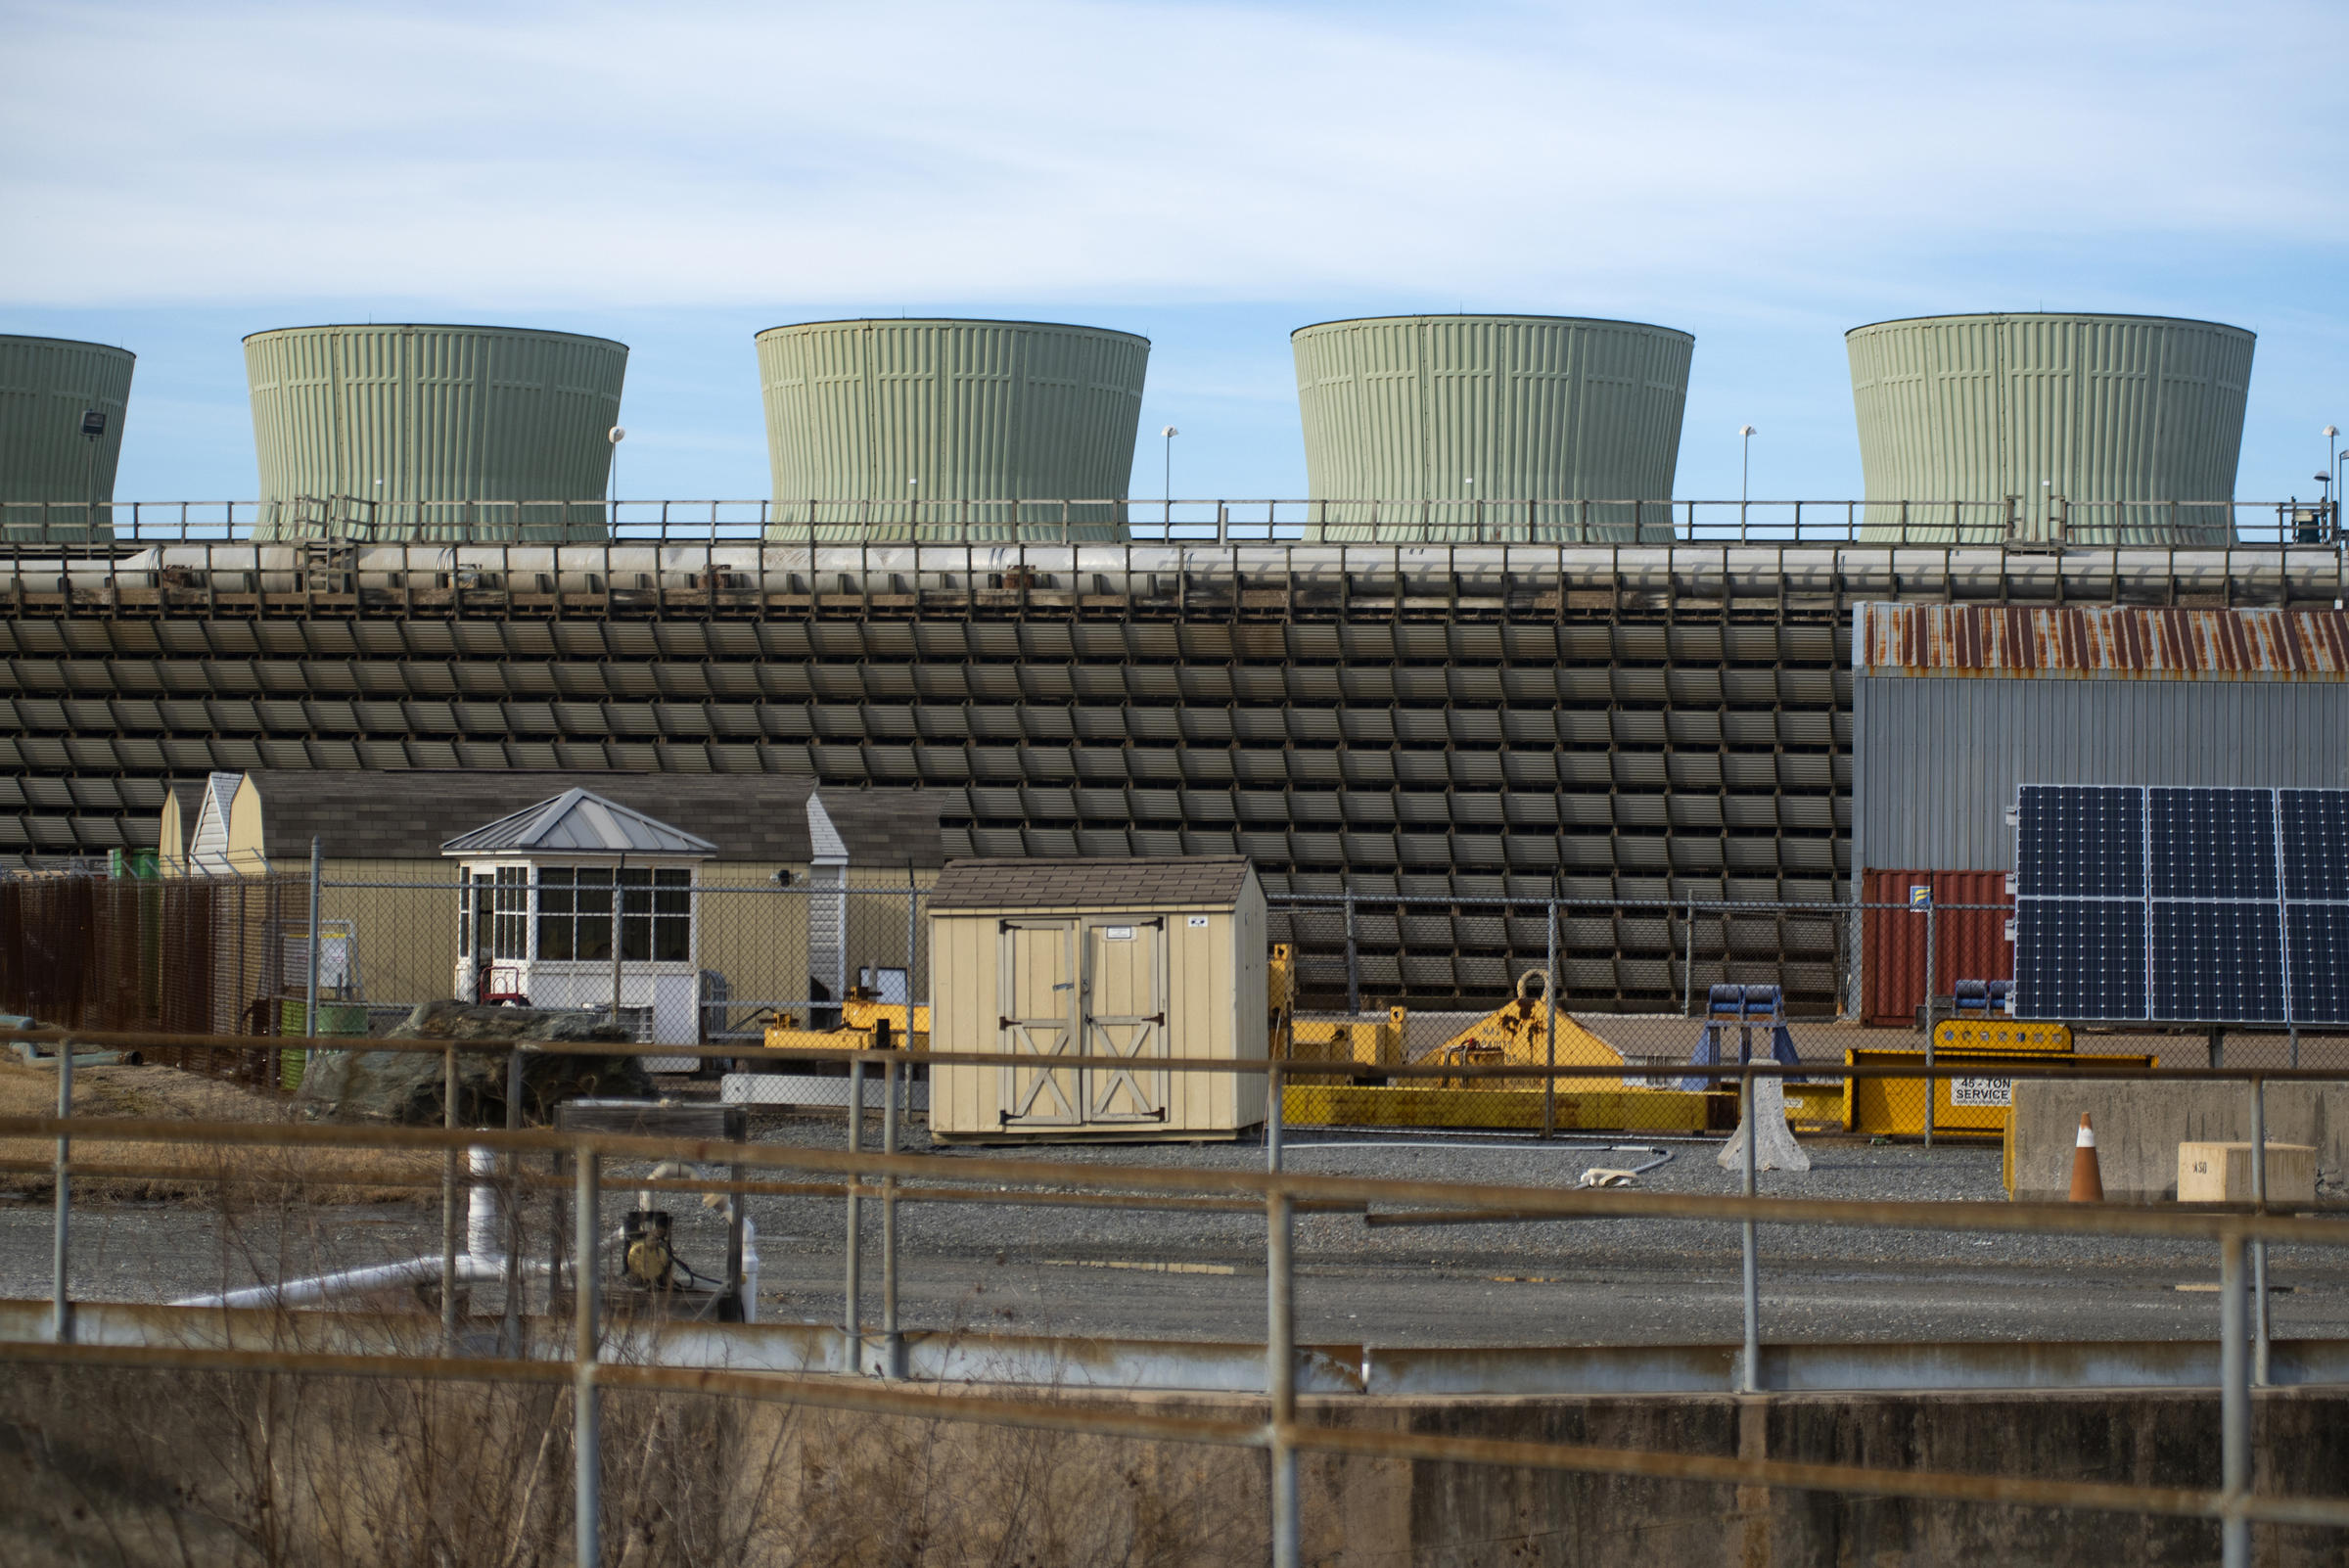 As Nuclear Waste Piles Up, Private Companies Pitch New